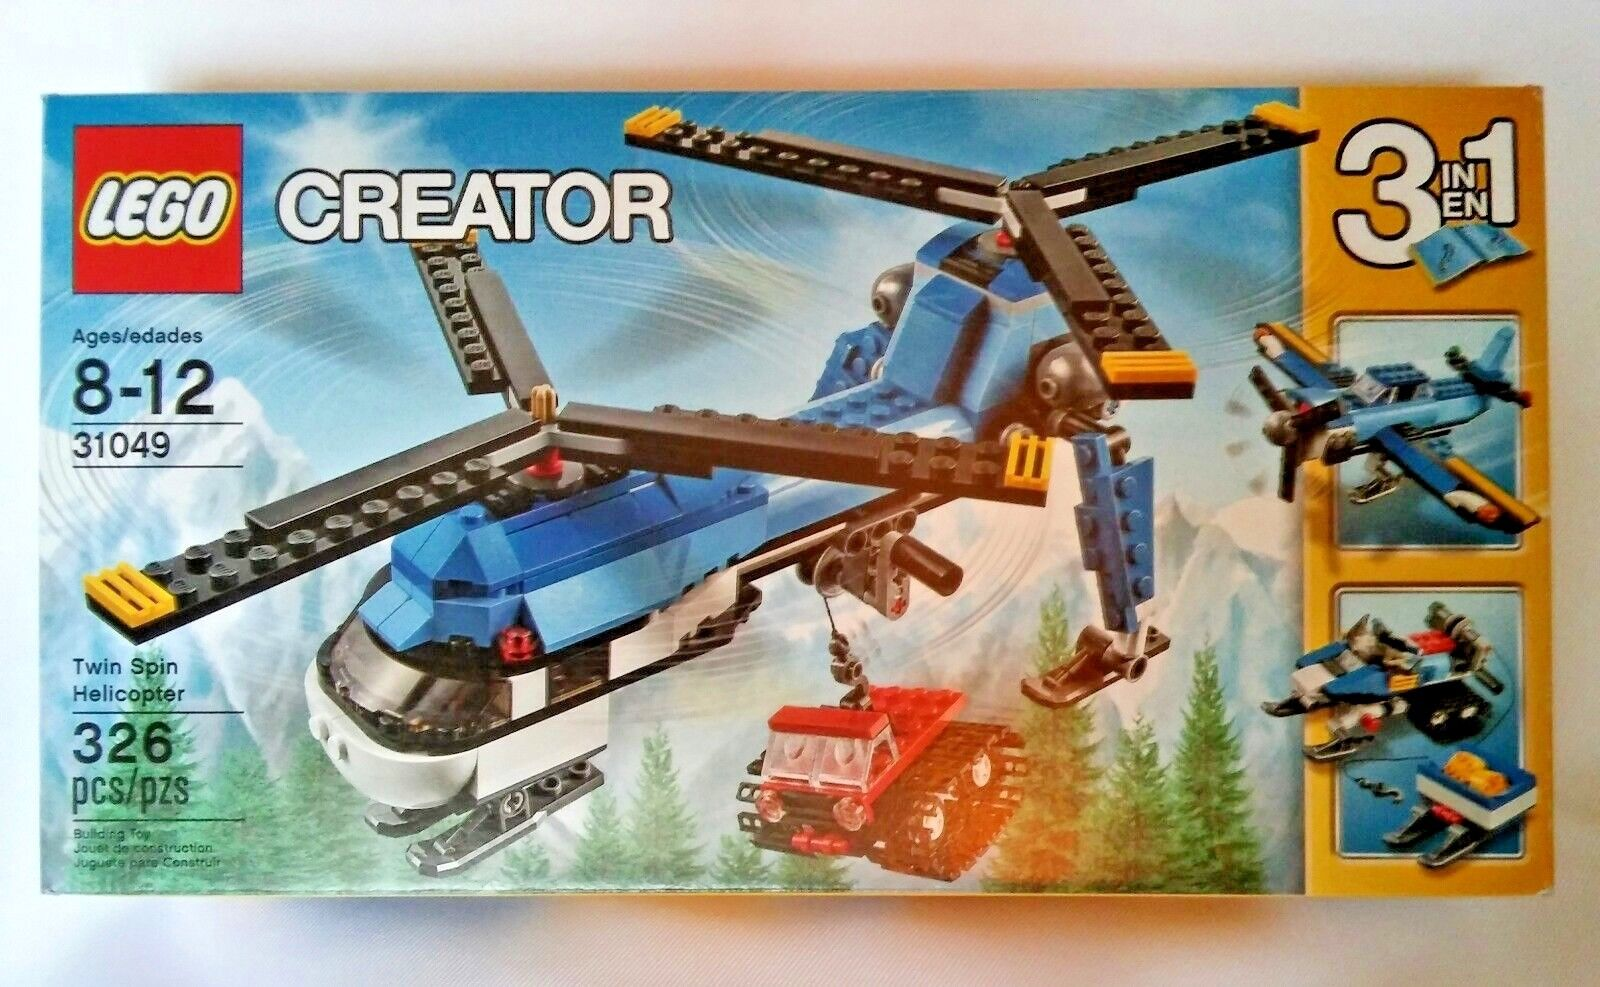 LEGO Creator Twin Spin Helicopter Building Set 31049 ORIGINAL Kit (326 Piece)